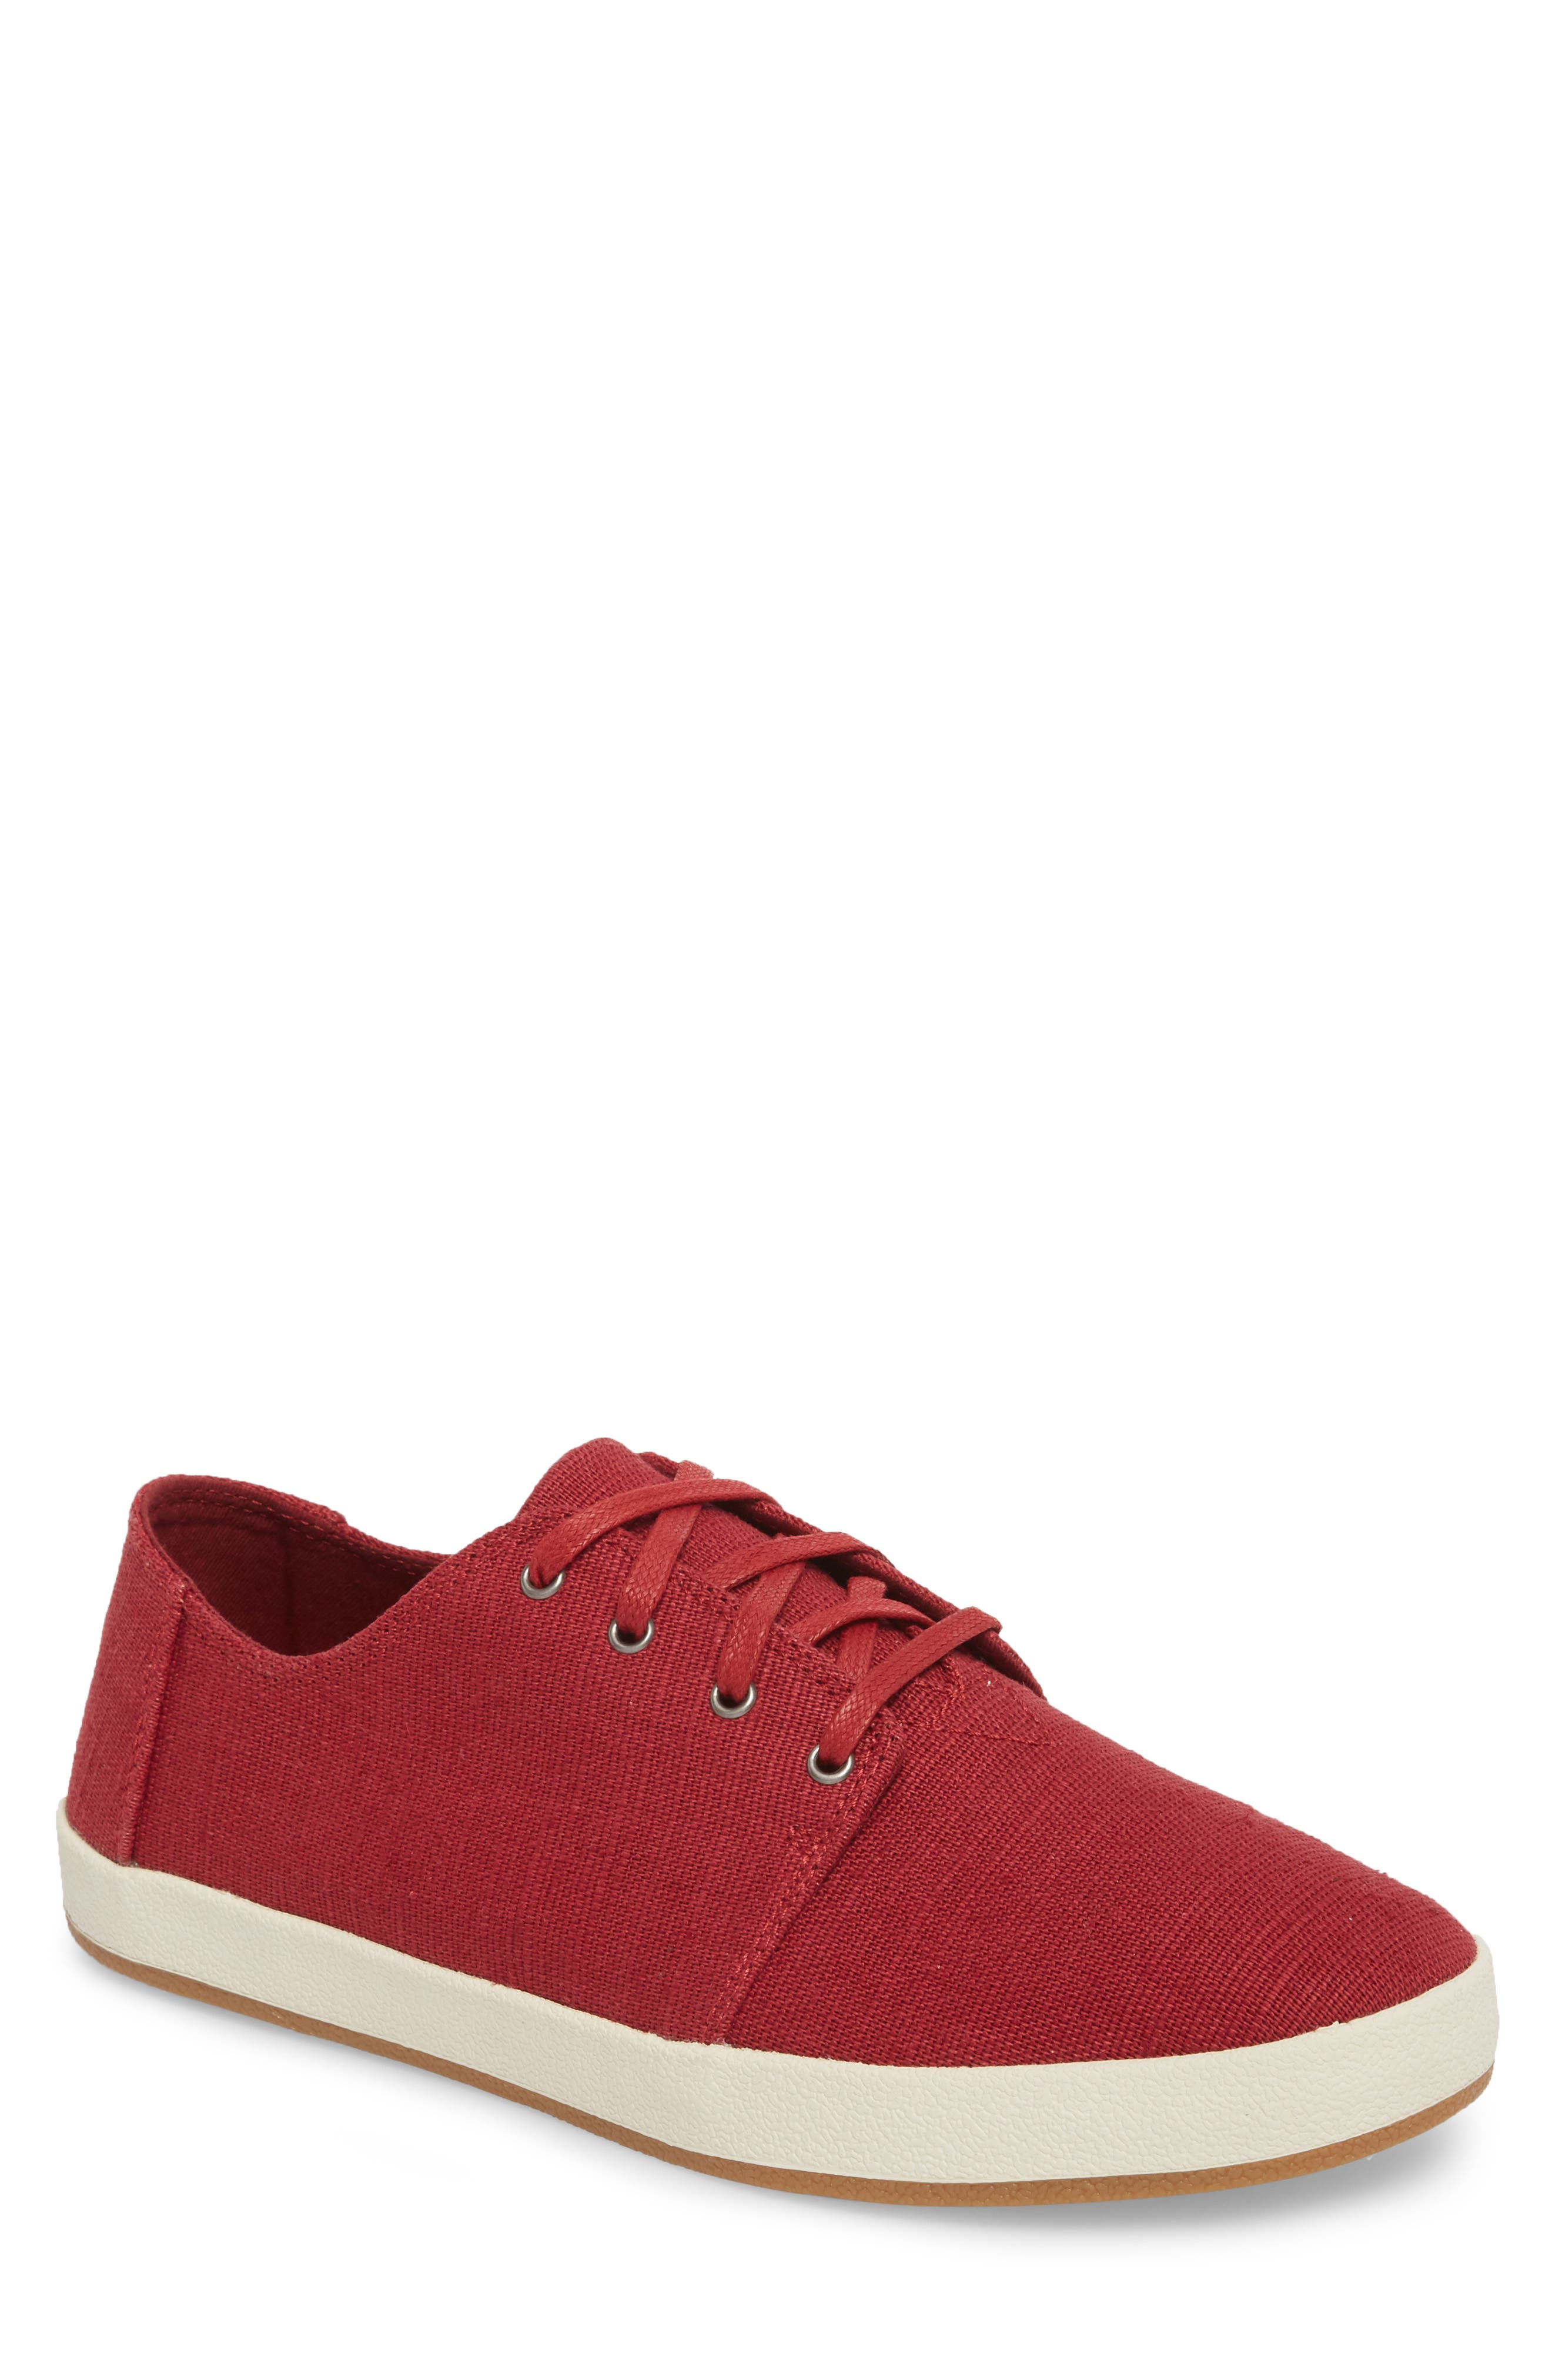 Payton Sneaker,                         Main,                         color, Henna Red Heritage Canvas